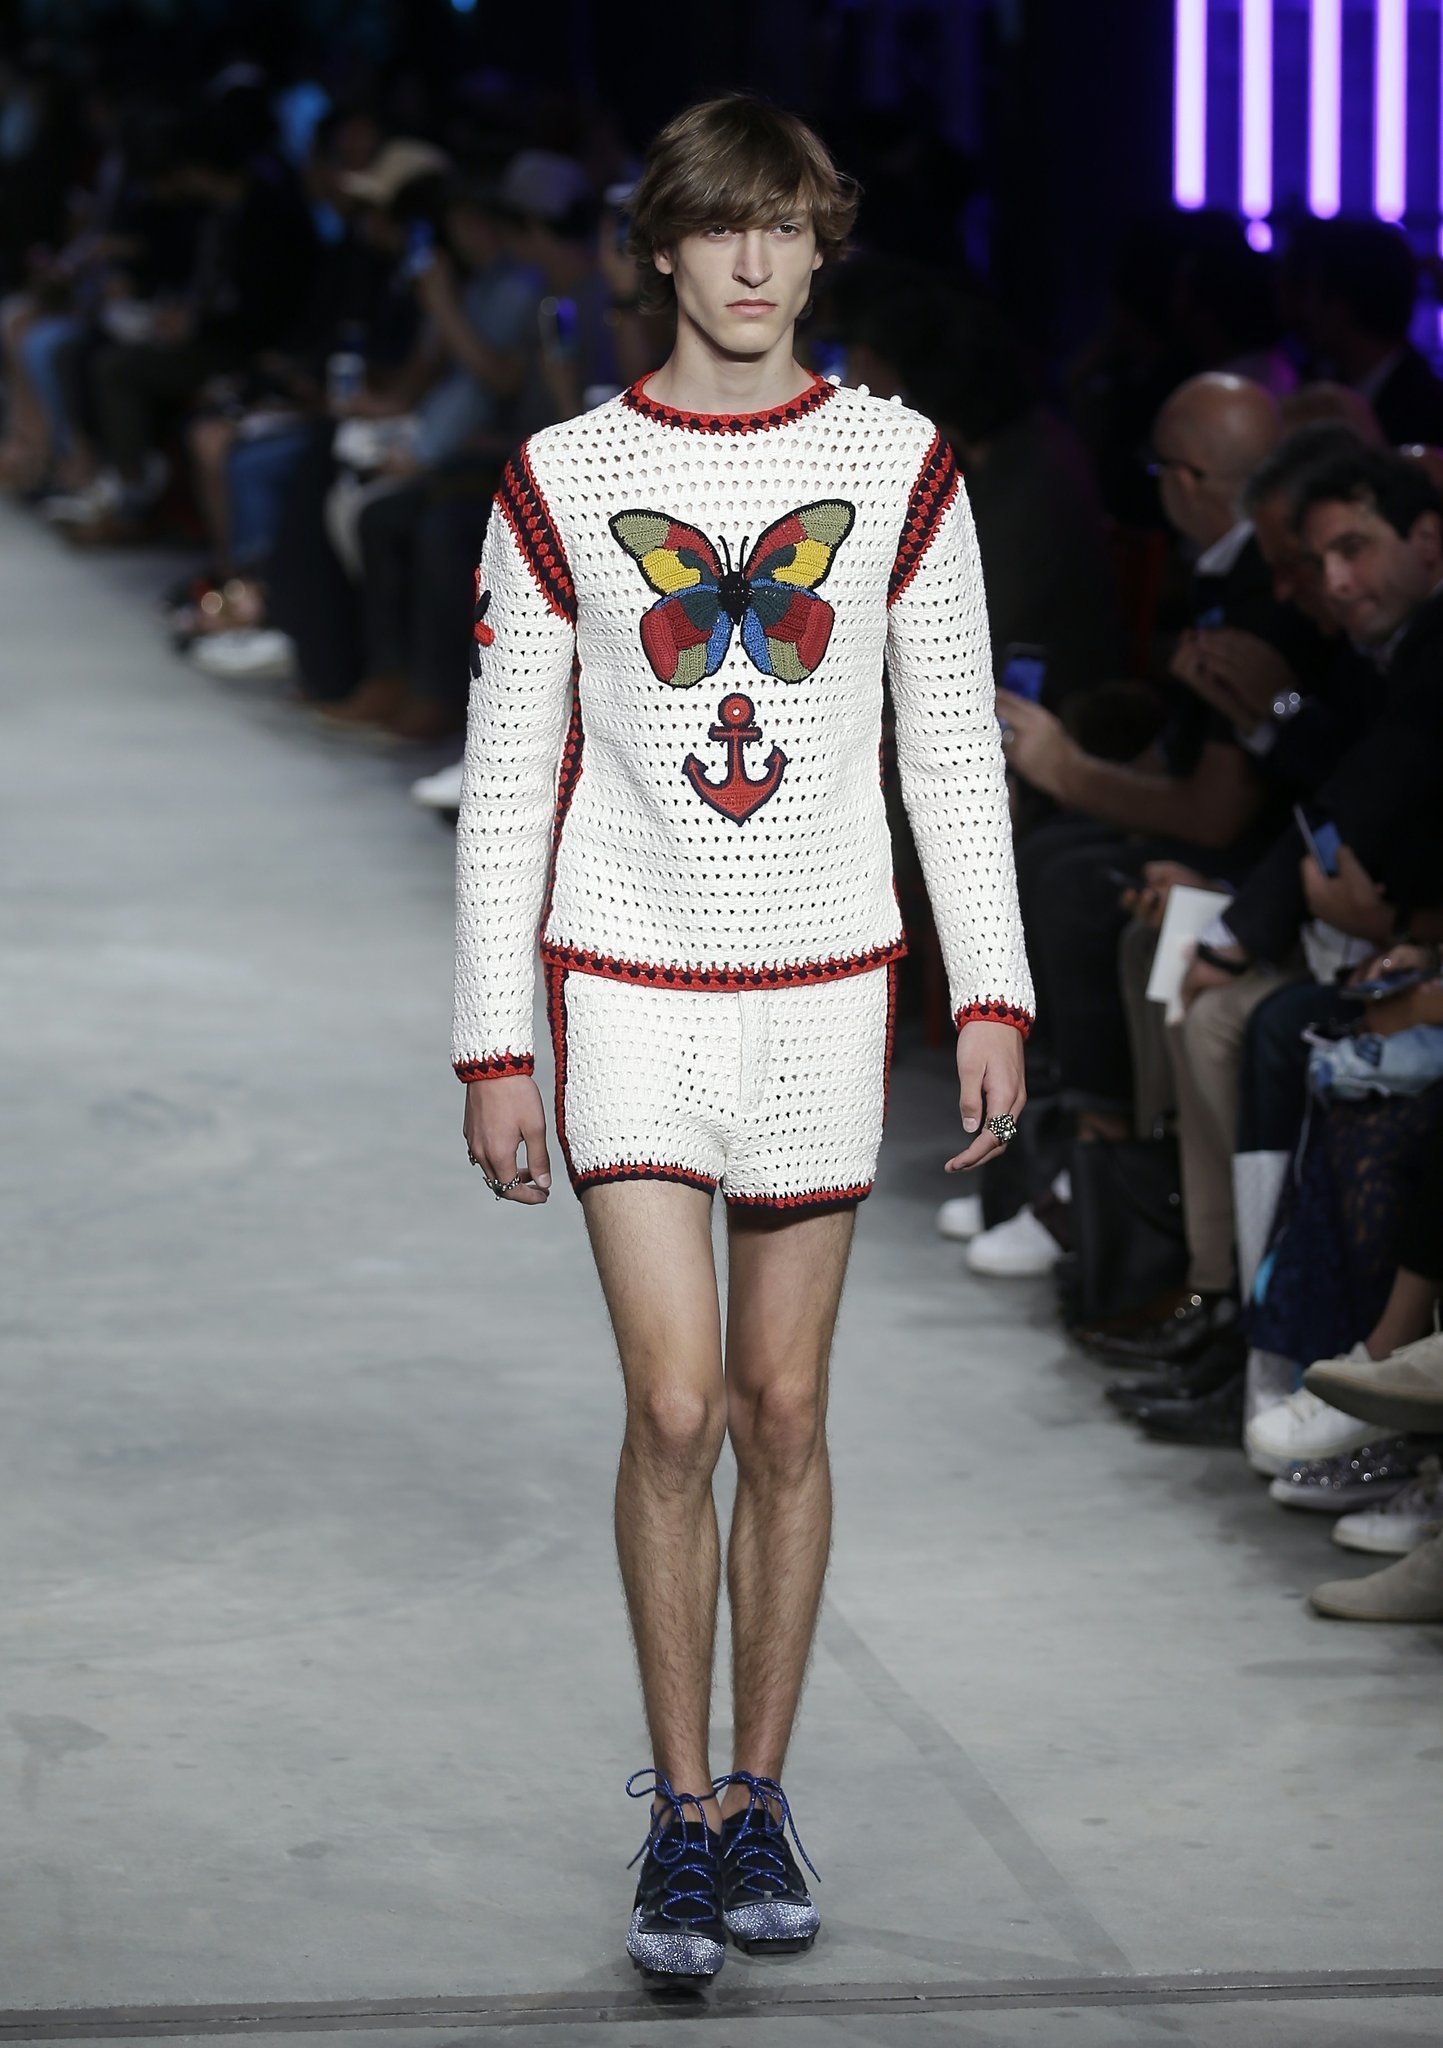 gucci s new designer serves up lace and ruffles for